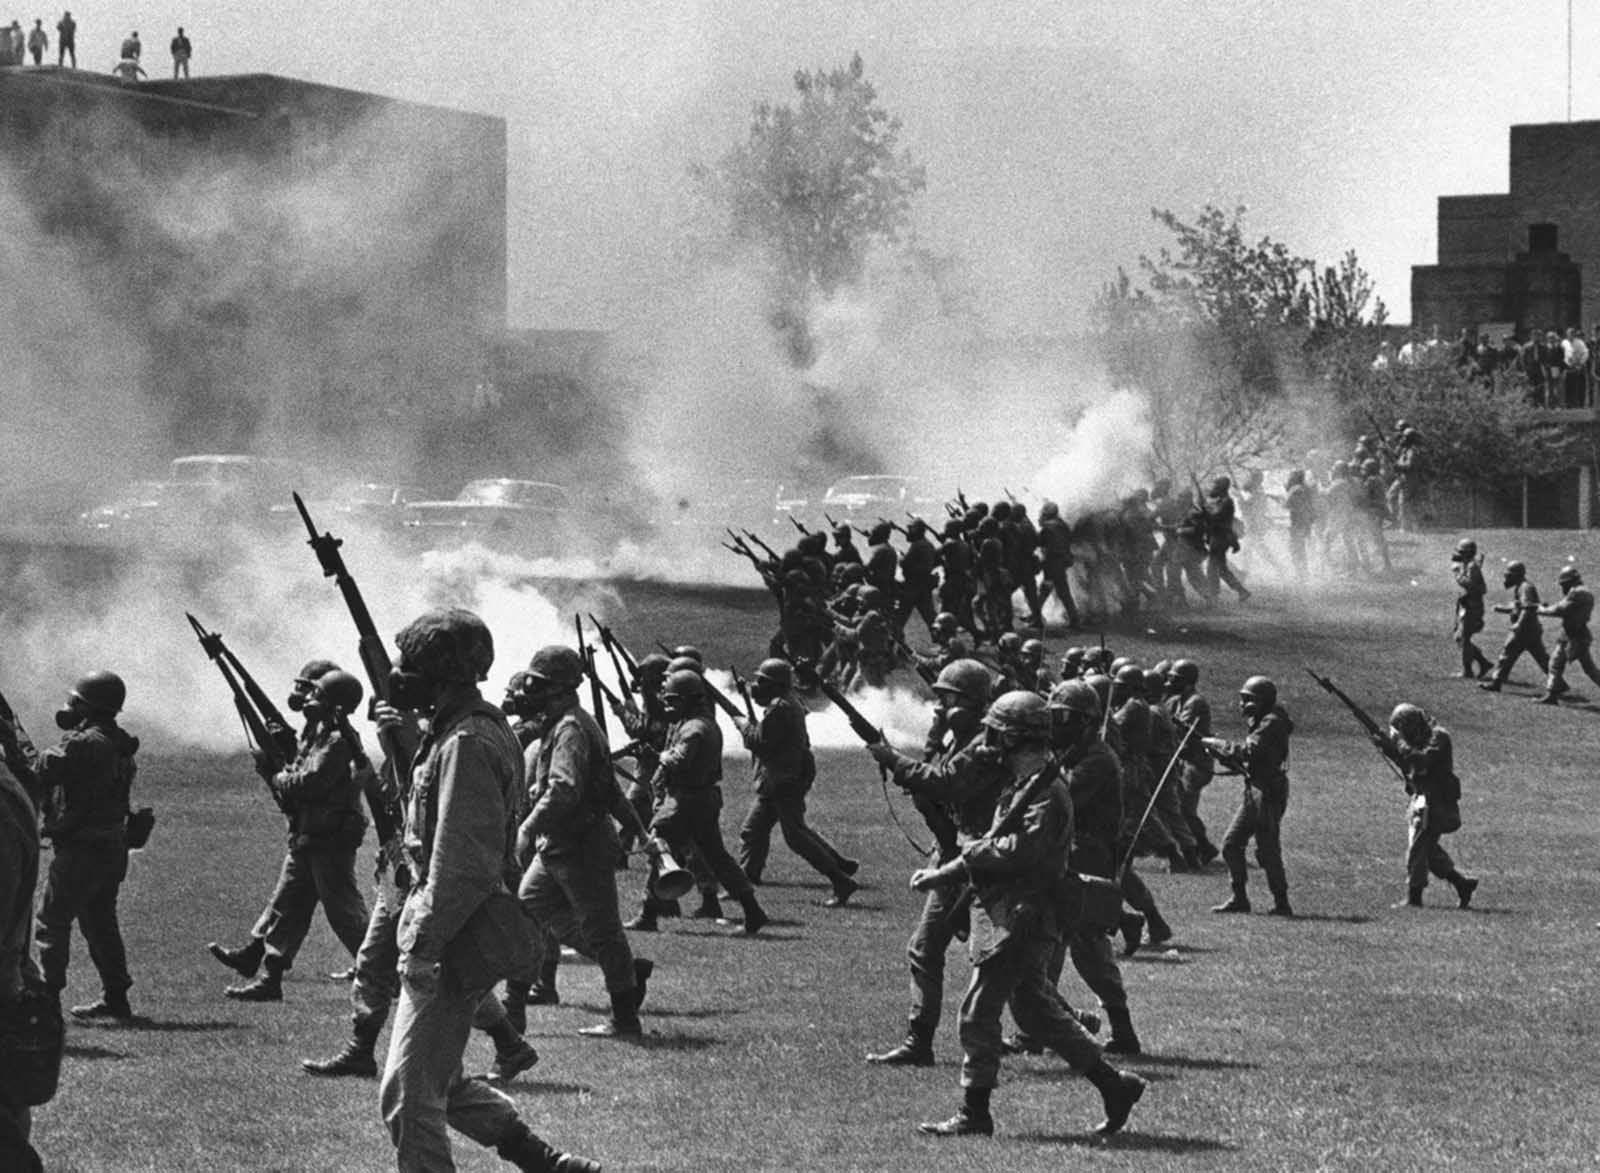 The Ohio National Guard moves in on rioting students at Kent State University in Kent, Ohio, on May 4, 1970. Four persons were killed and eleven wounded when National Guardsmen opened fire.